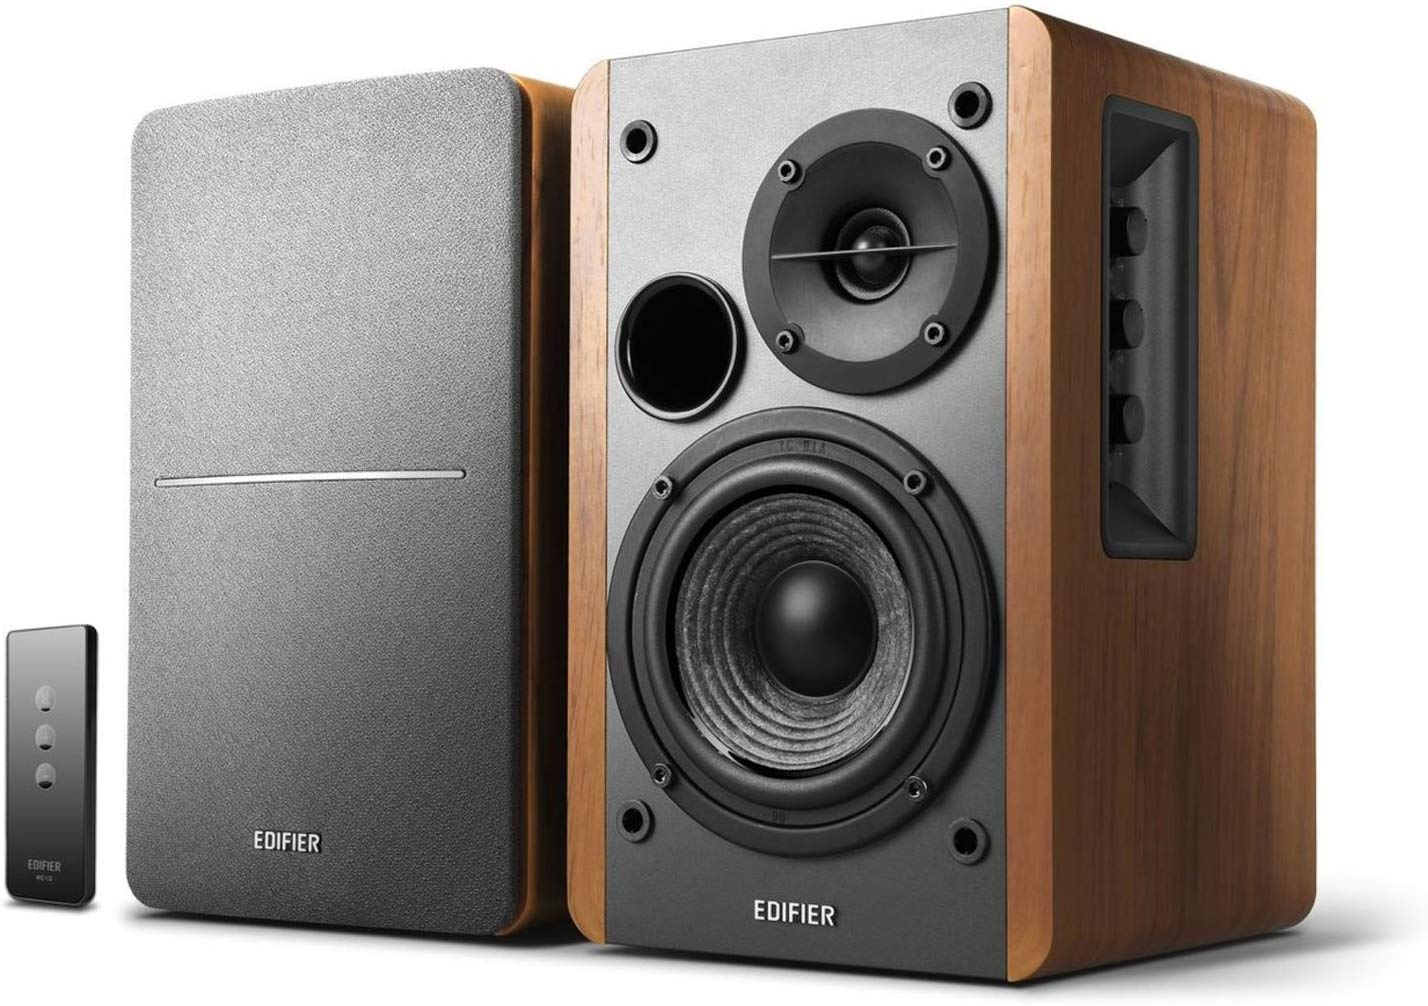 cheapest high-quality bookshelf speakers - Edifier R1280T